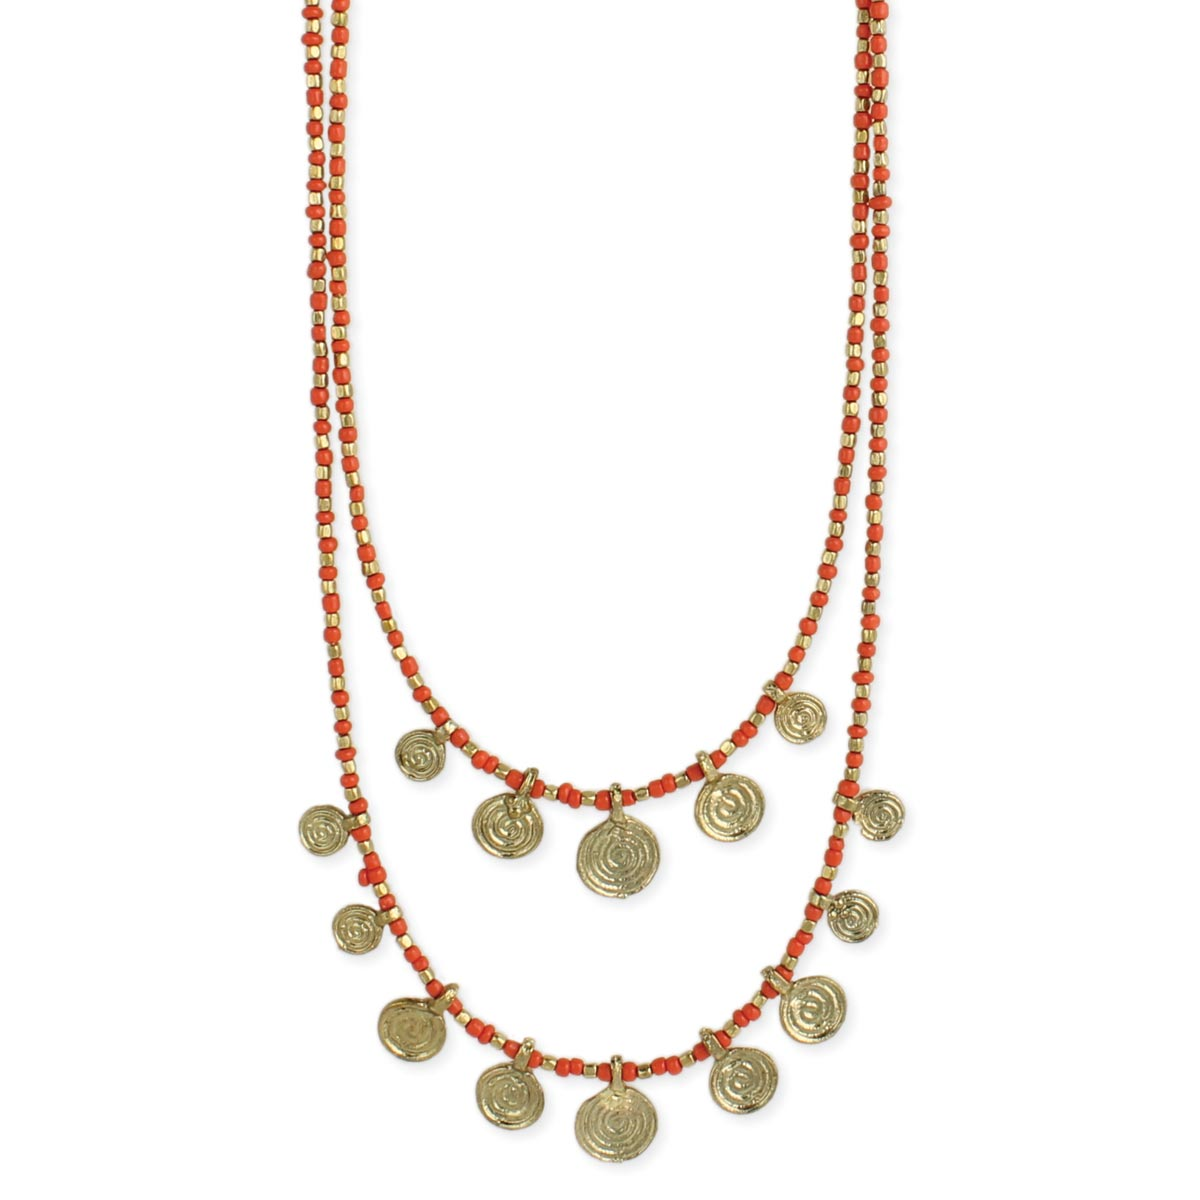 necklace jewels pearl jewelry blog rihanna edgy trend ritani gemstone iridescence